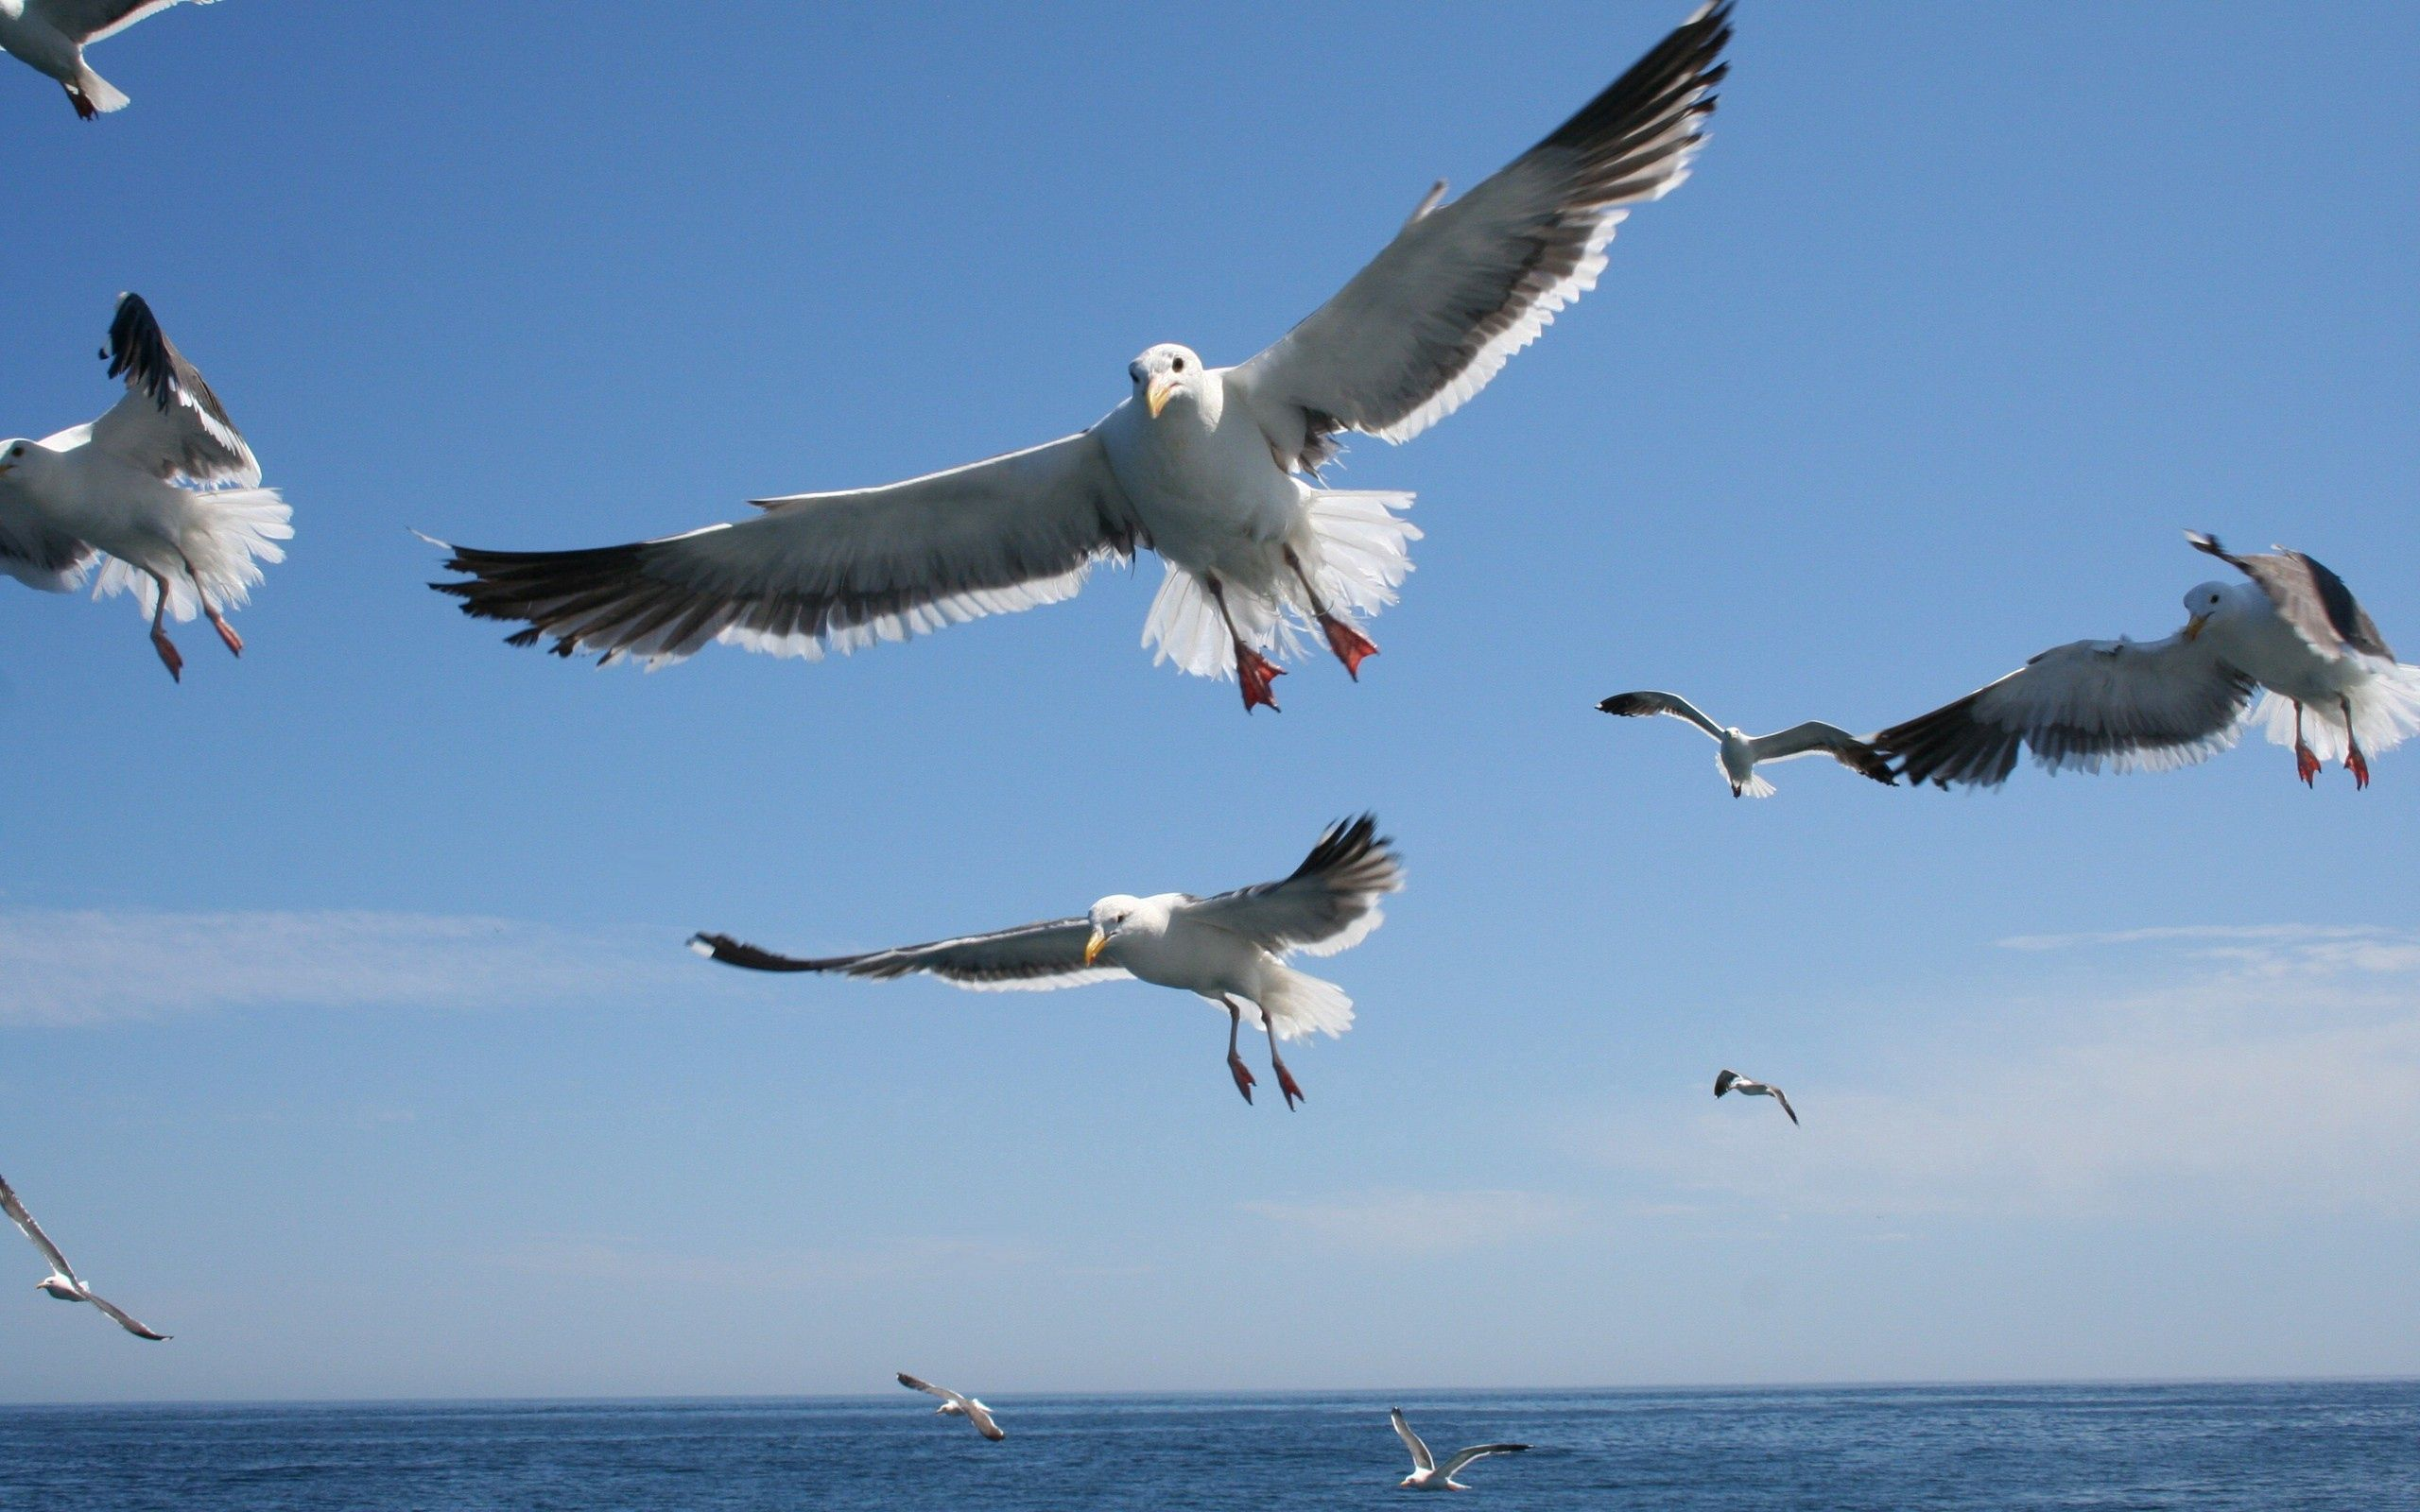 144483 download wallpaper Animals, Flight, Sea, Sky, Seagulls screensavers and pictures for free